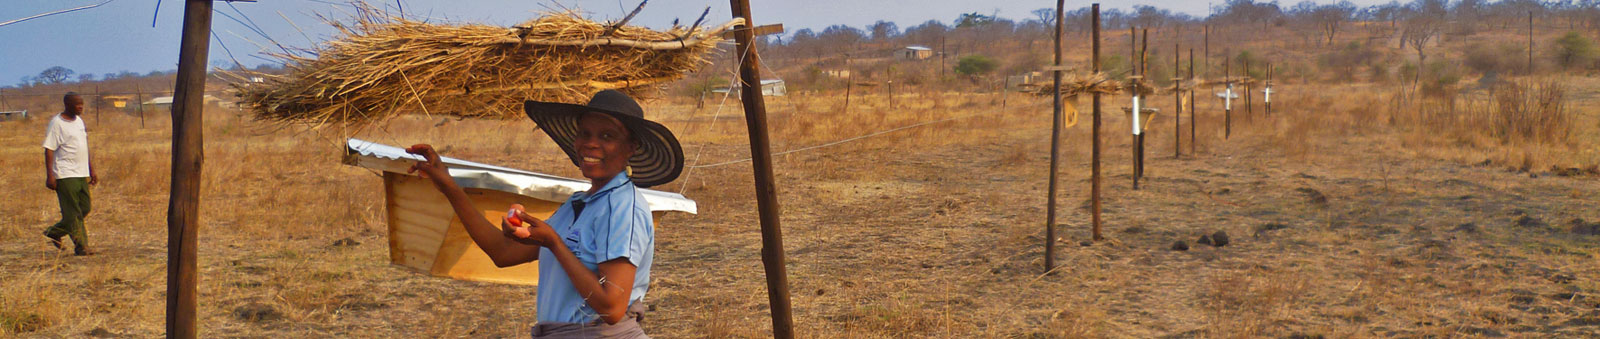 Botswana Farmer finishing construction of a beehive fence